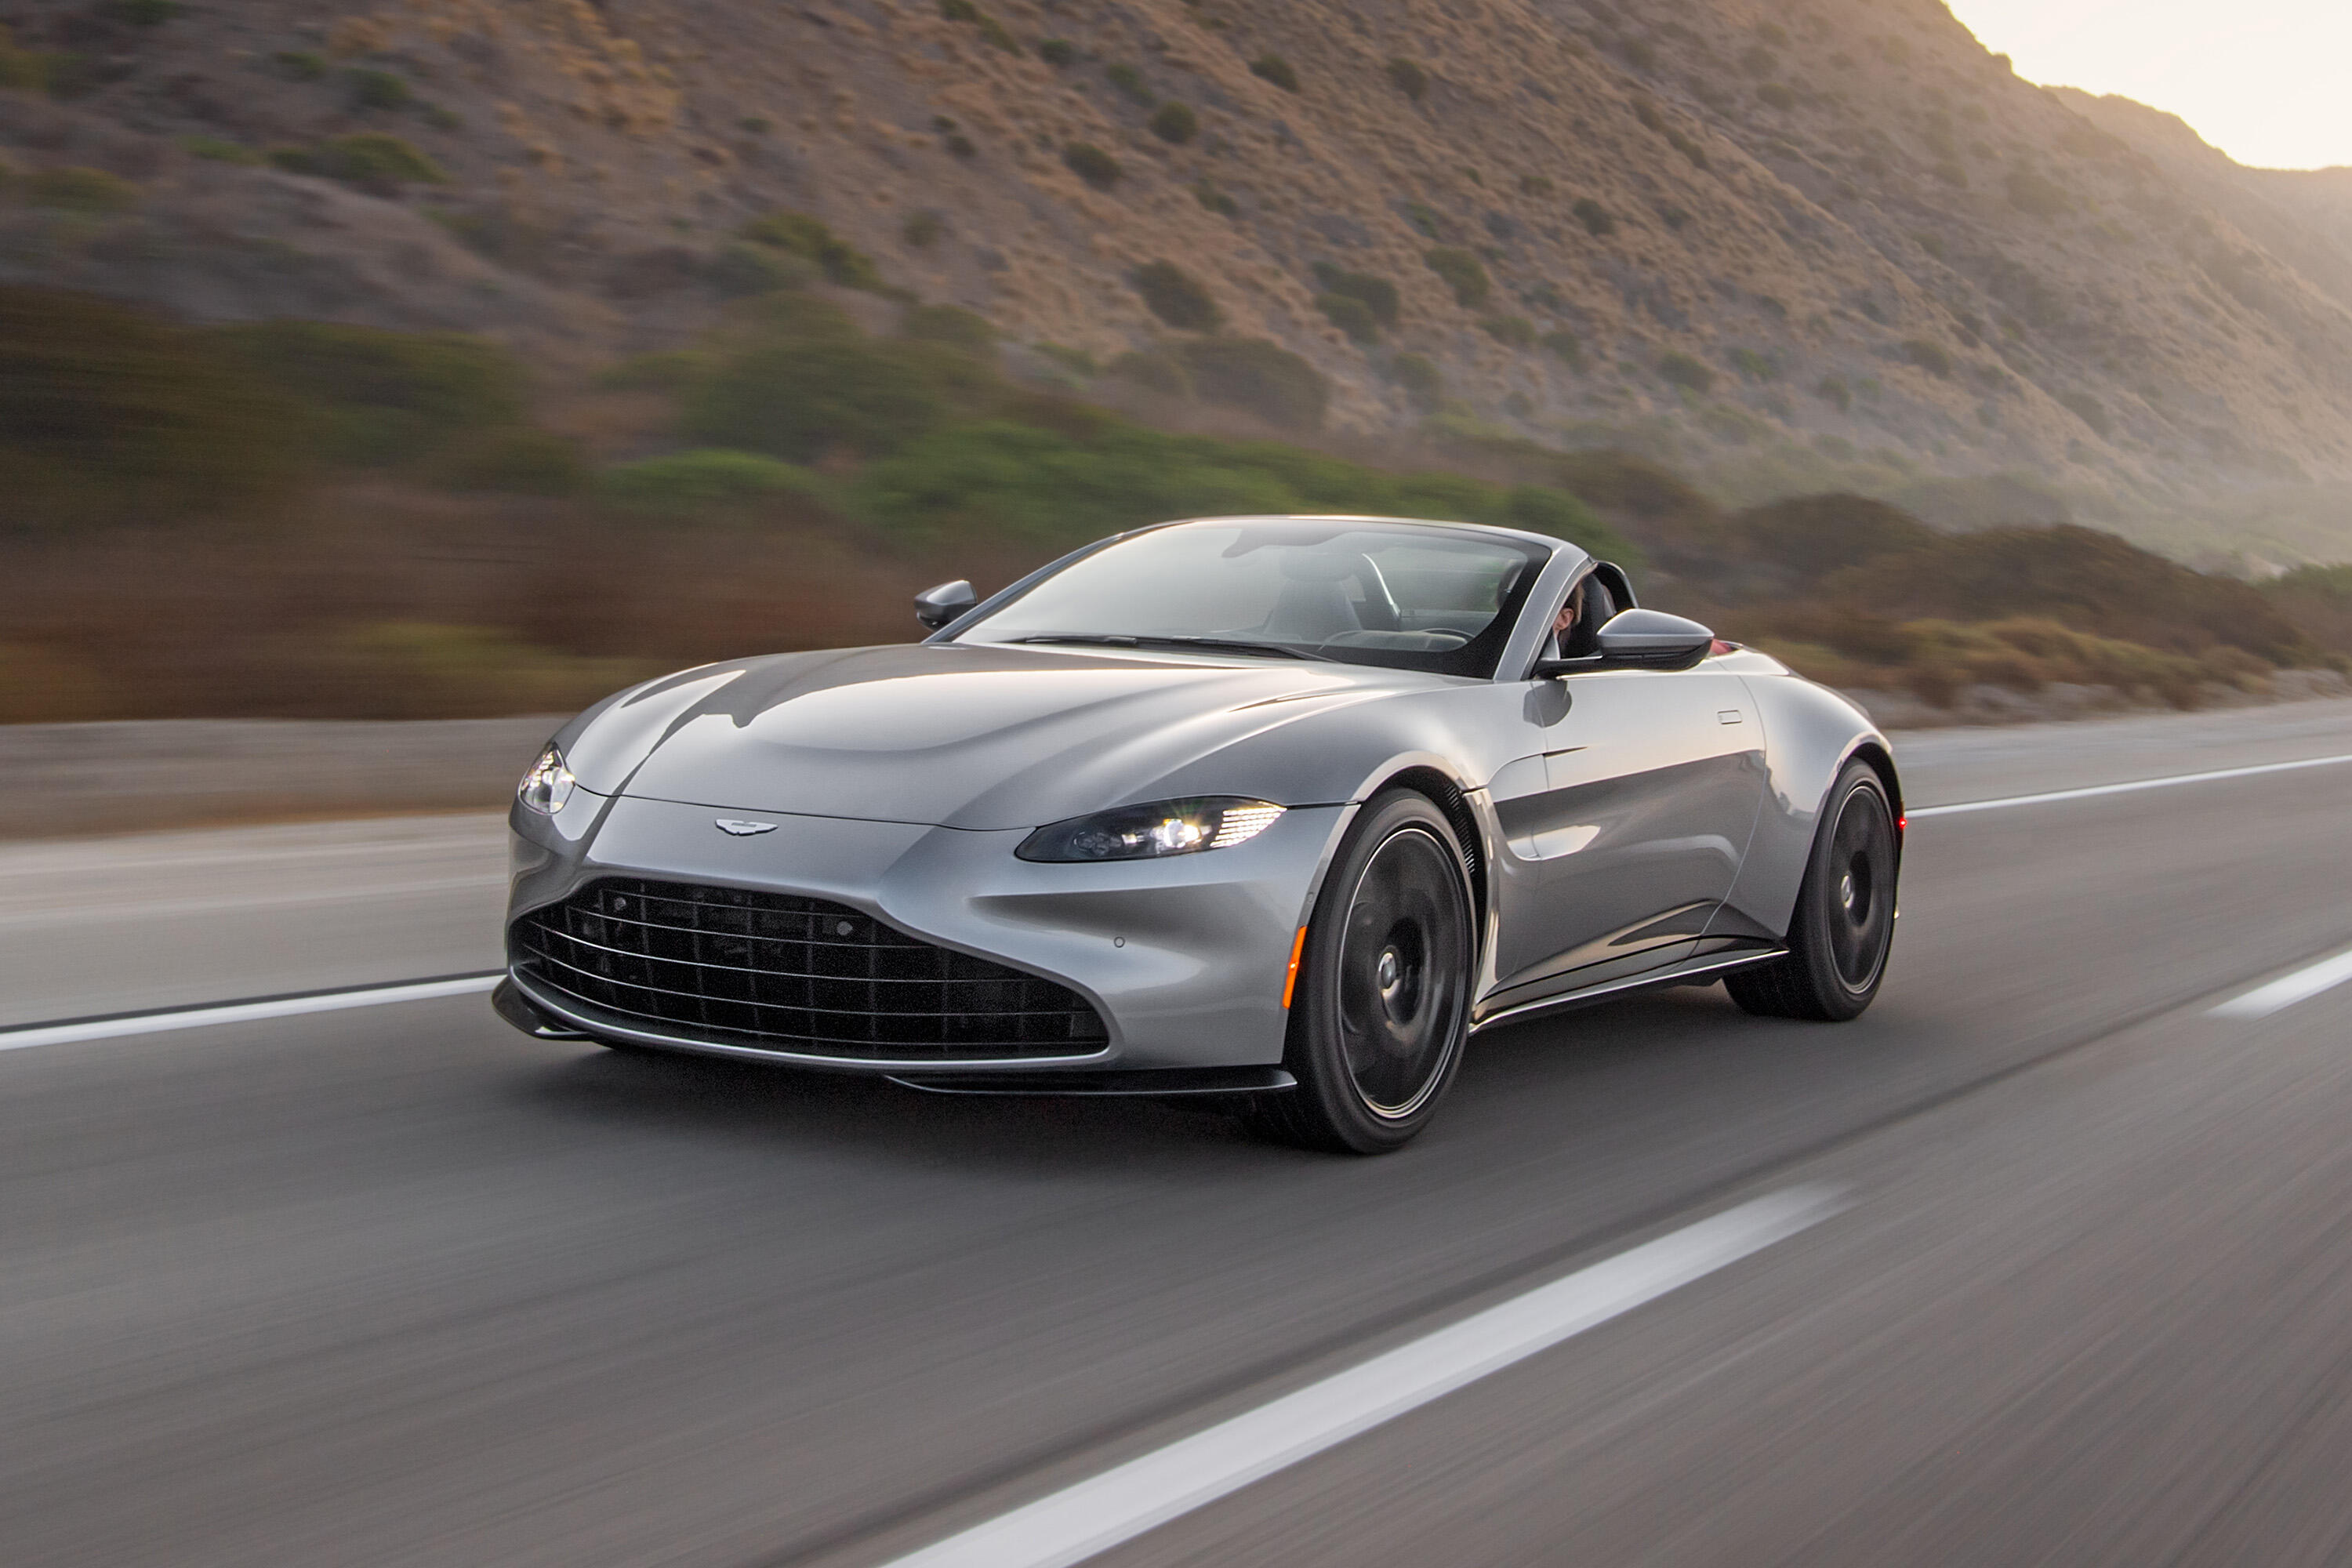 2021 Aston Martin Vantage Roadster First Drive Review New Look Same Thrill Roadshow